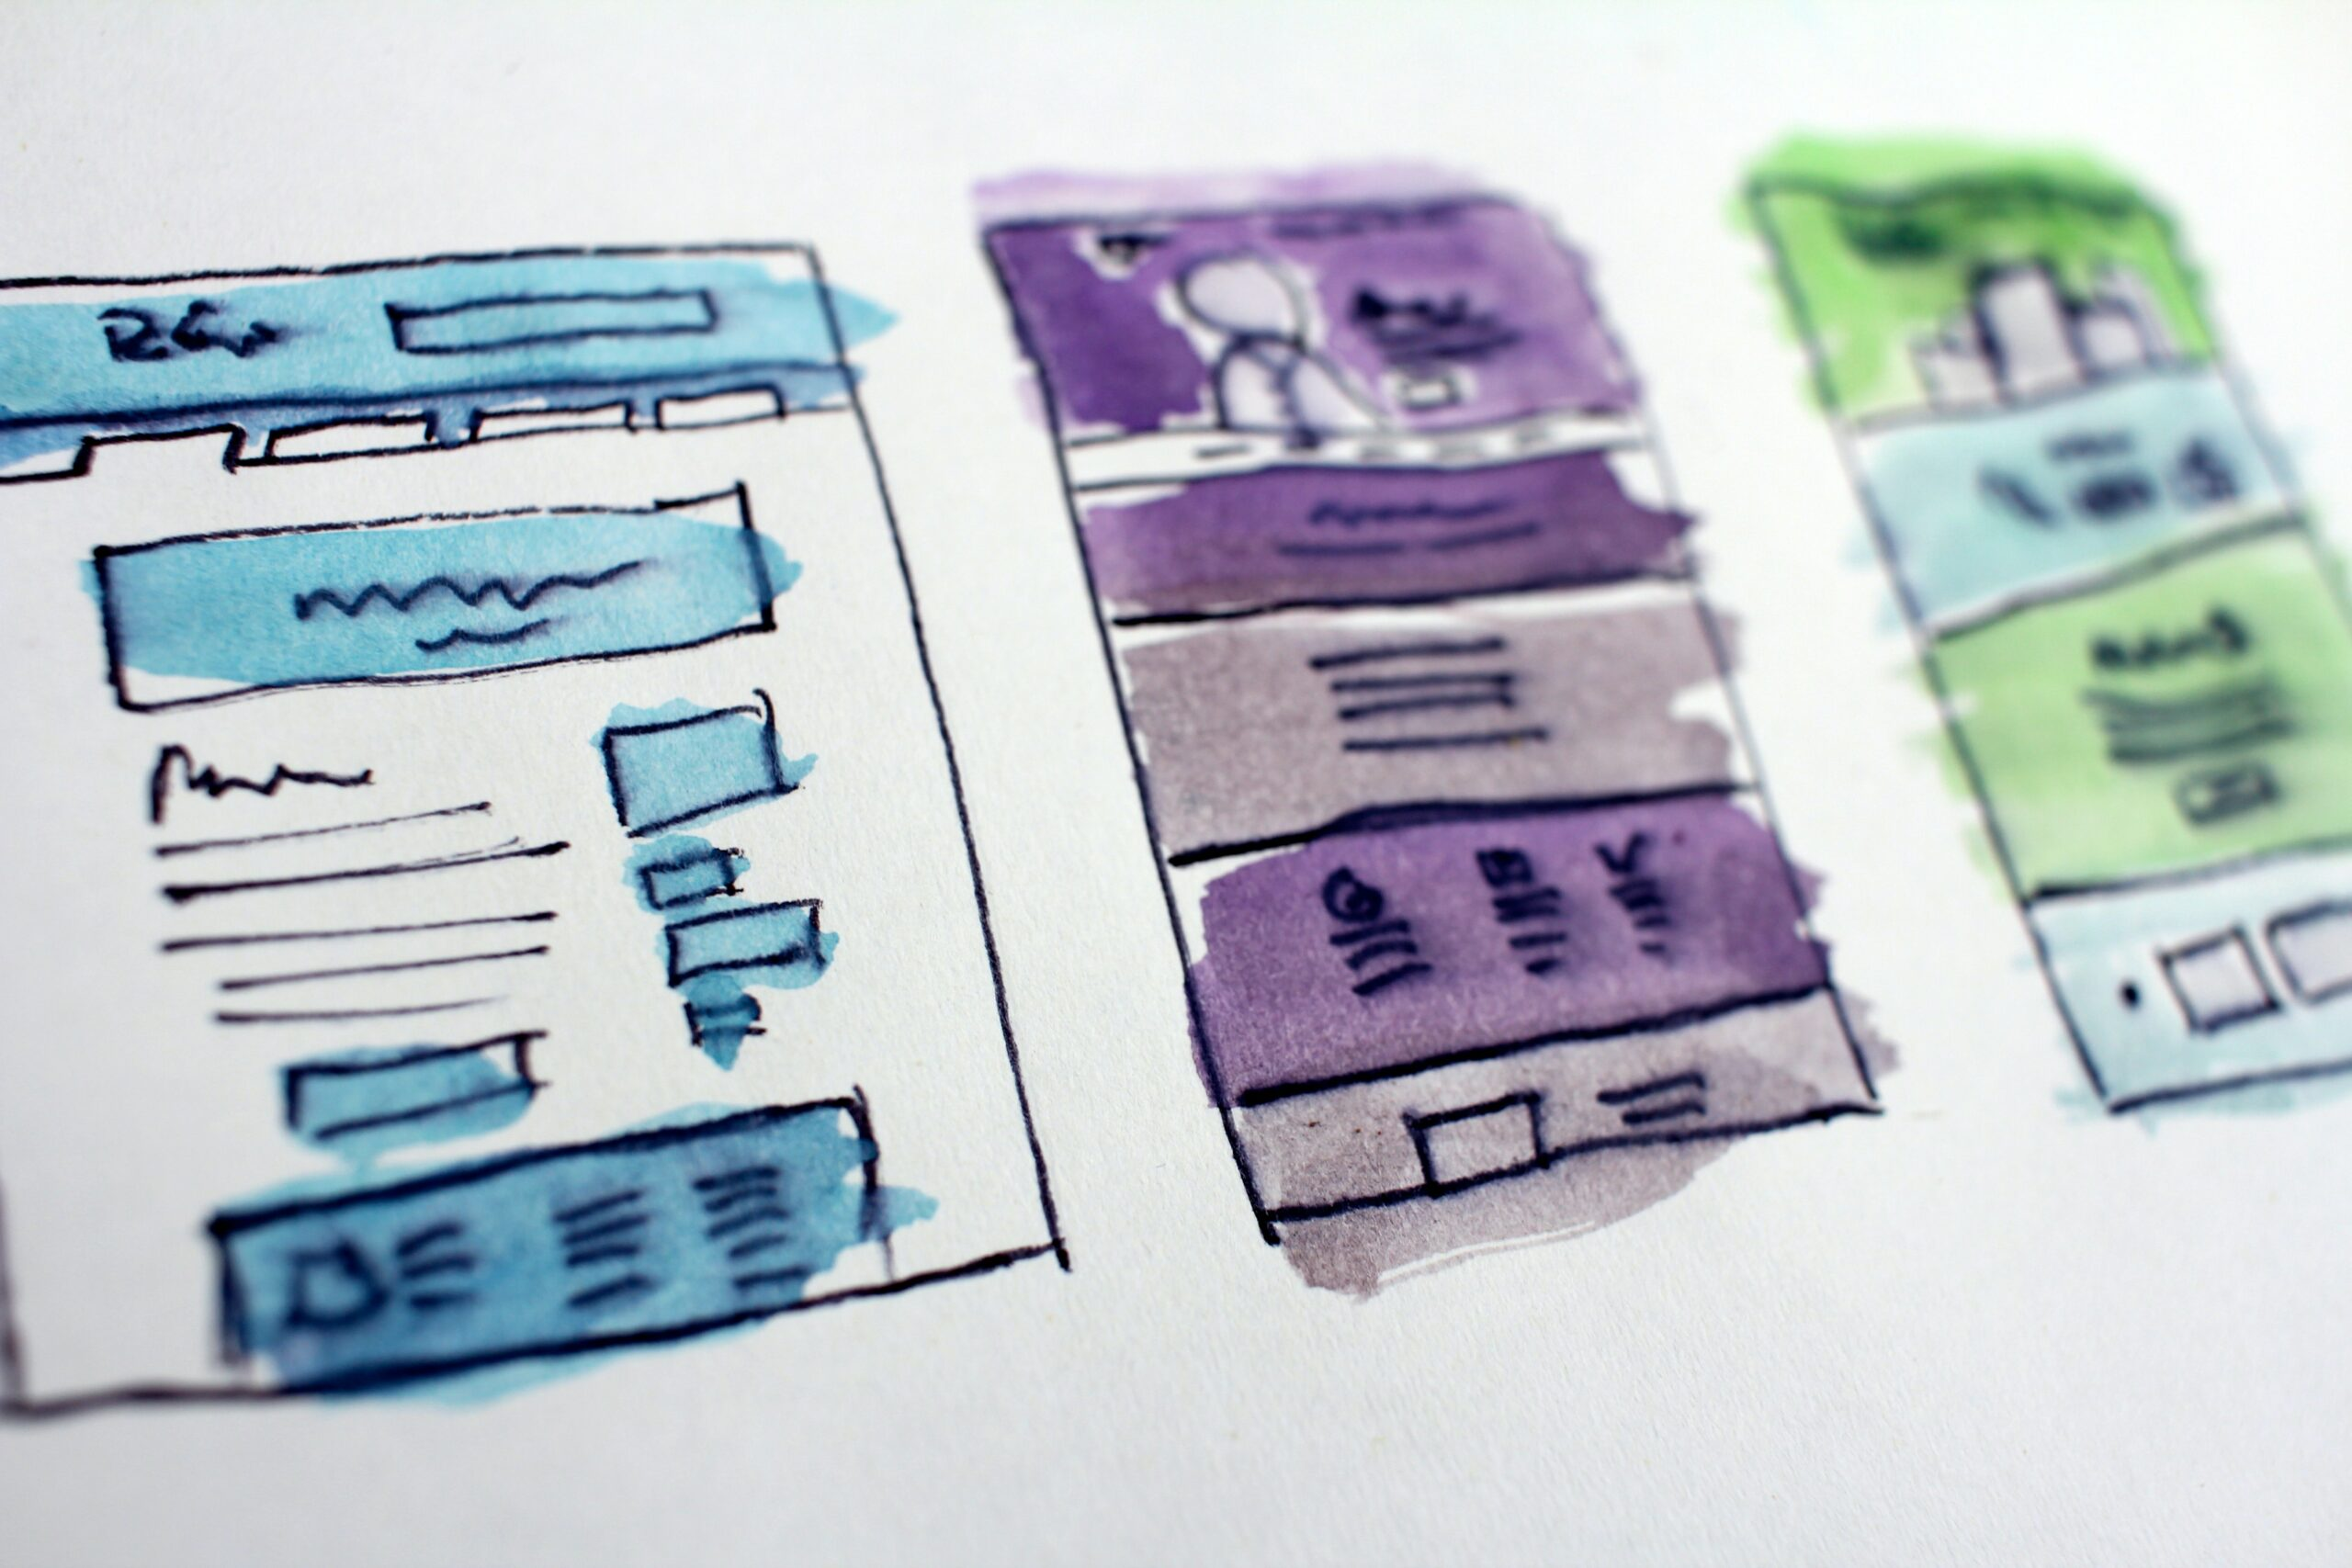 Colorful Storyboard showing drawings of website pages